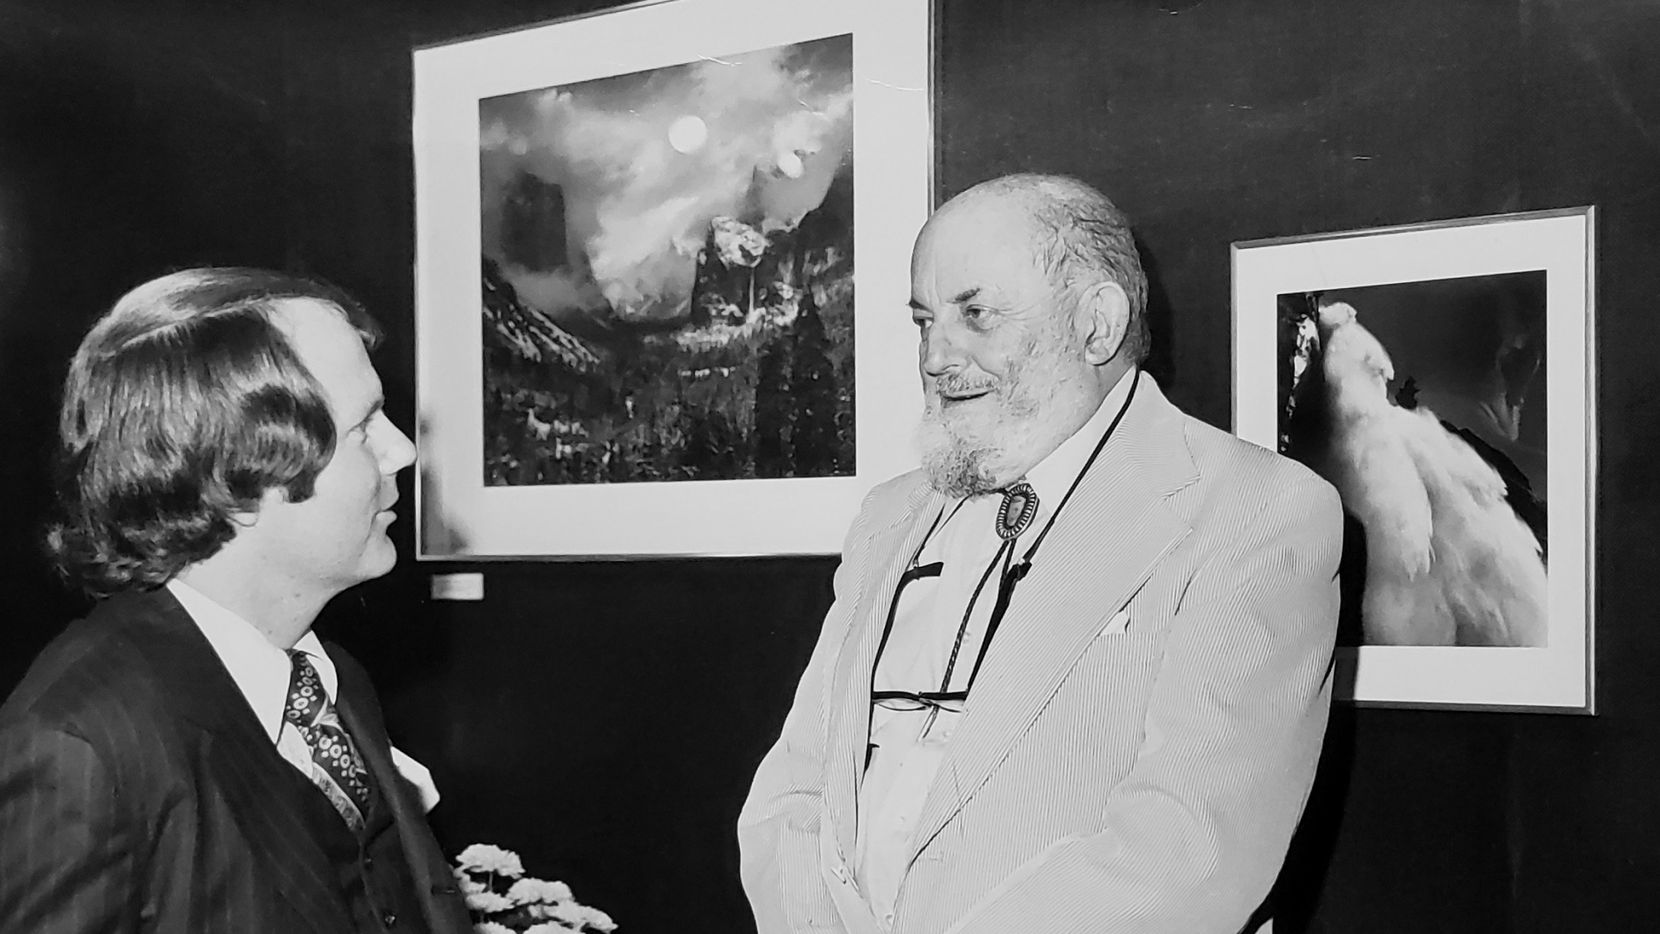 Ben Breard spoke with renowned landscape photographer Ansel Adams at a reception in the gallery in 1973.